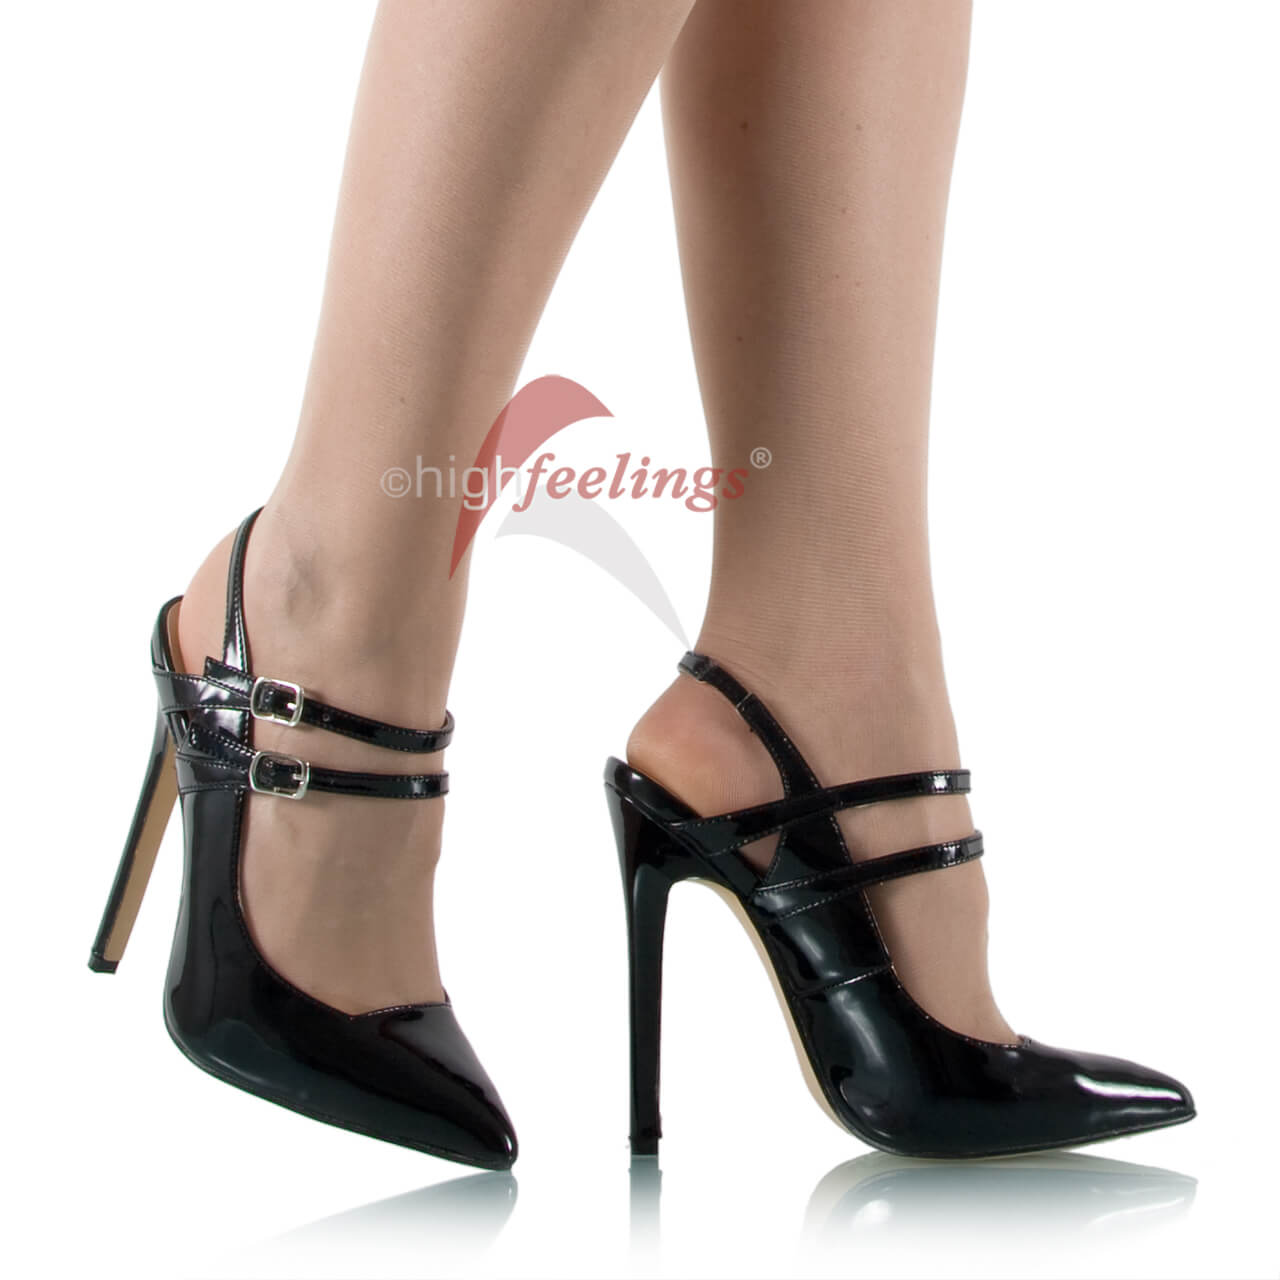 riemchen high heels pumps online bestellen high feelings. Black Bedroom Furniture Sets. Home Design Ideas